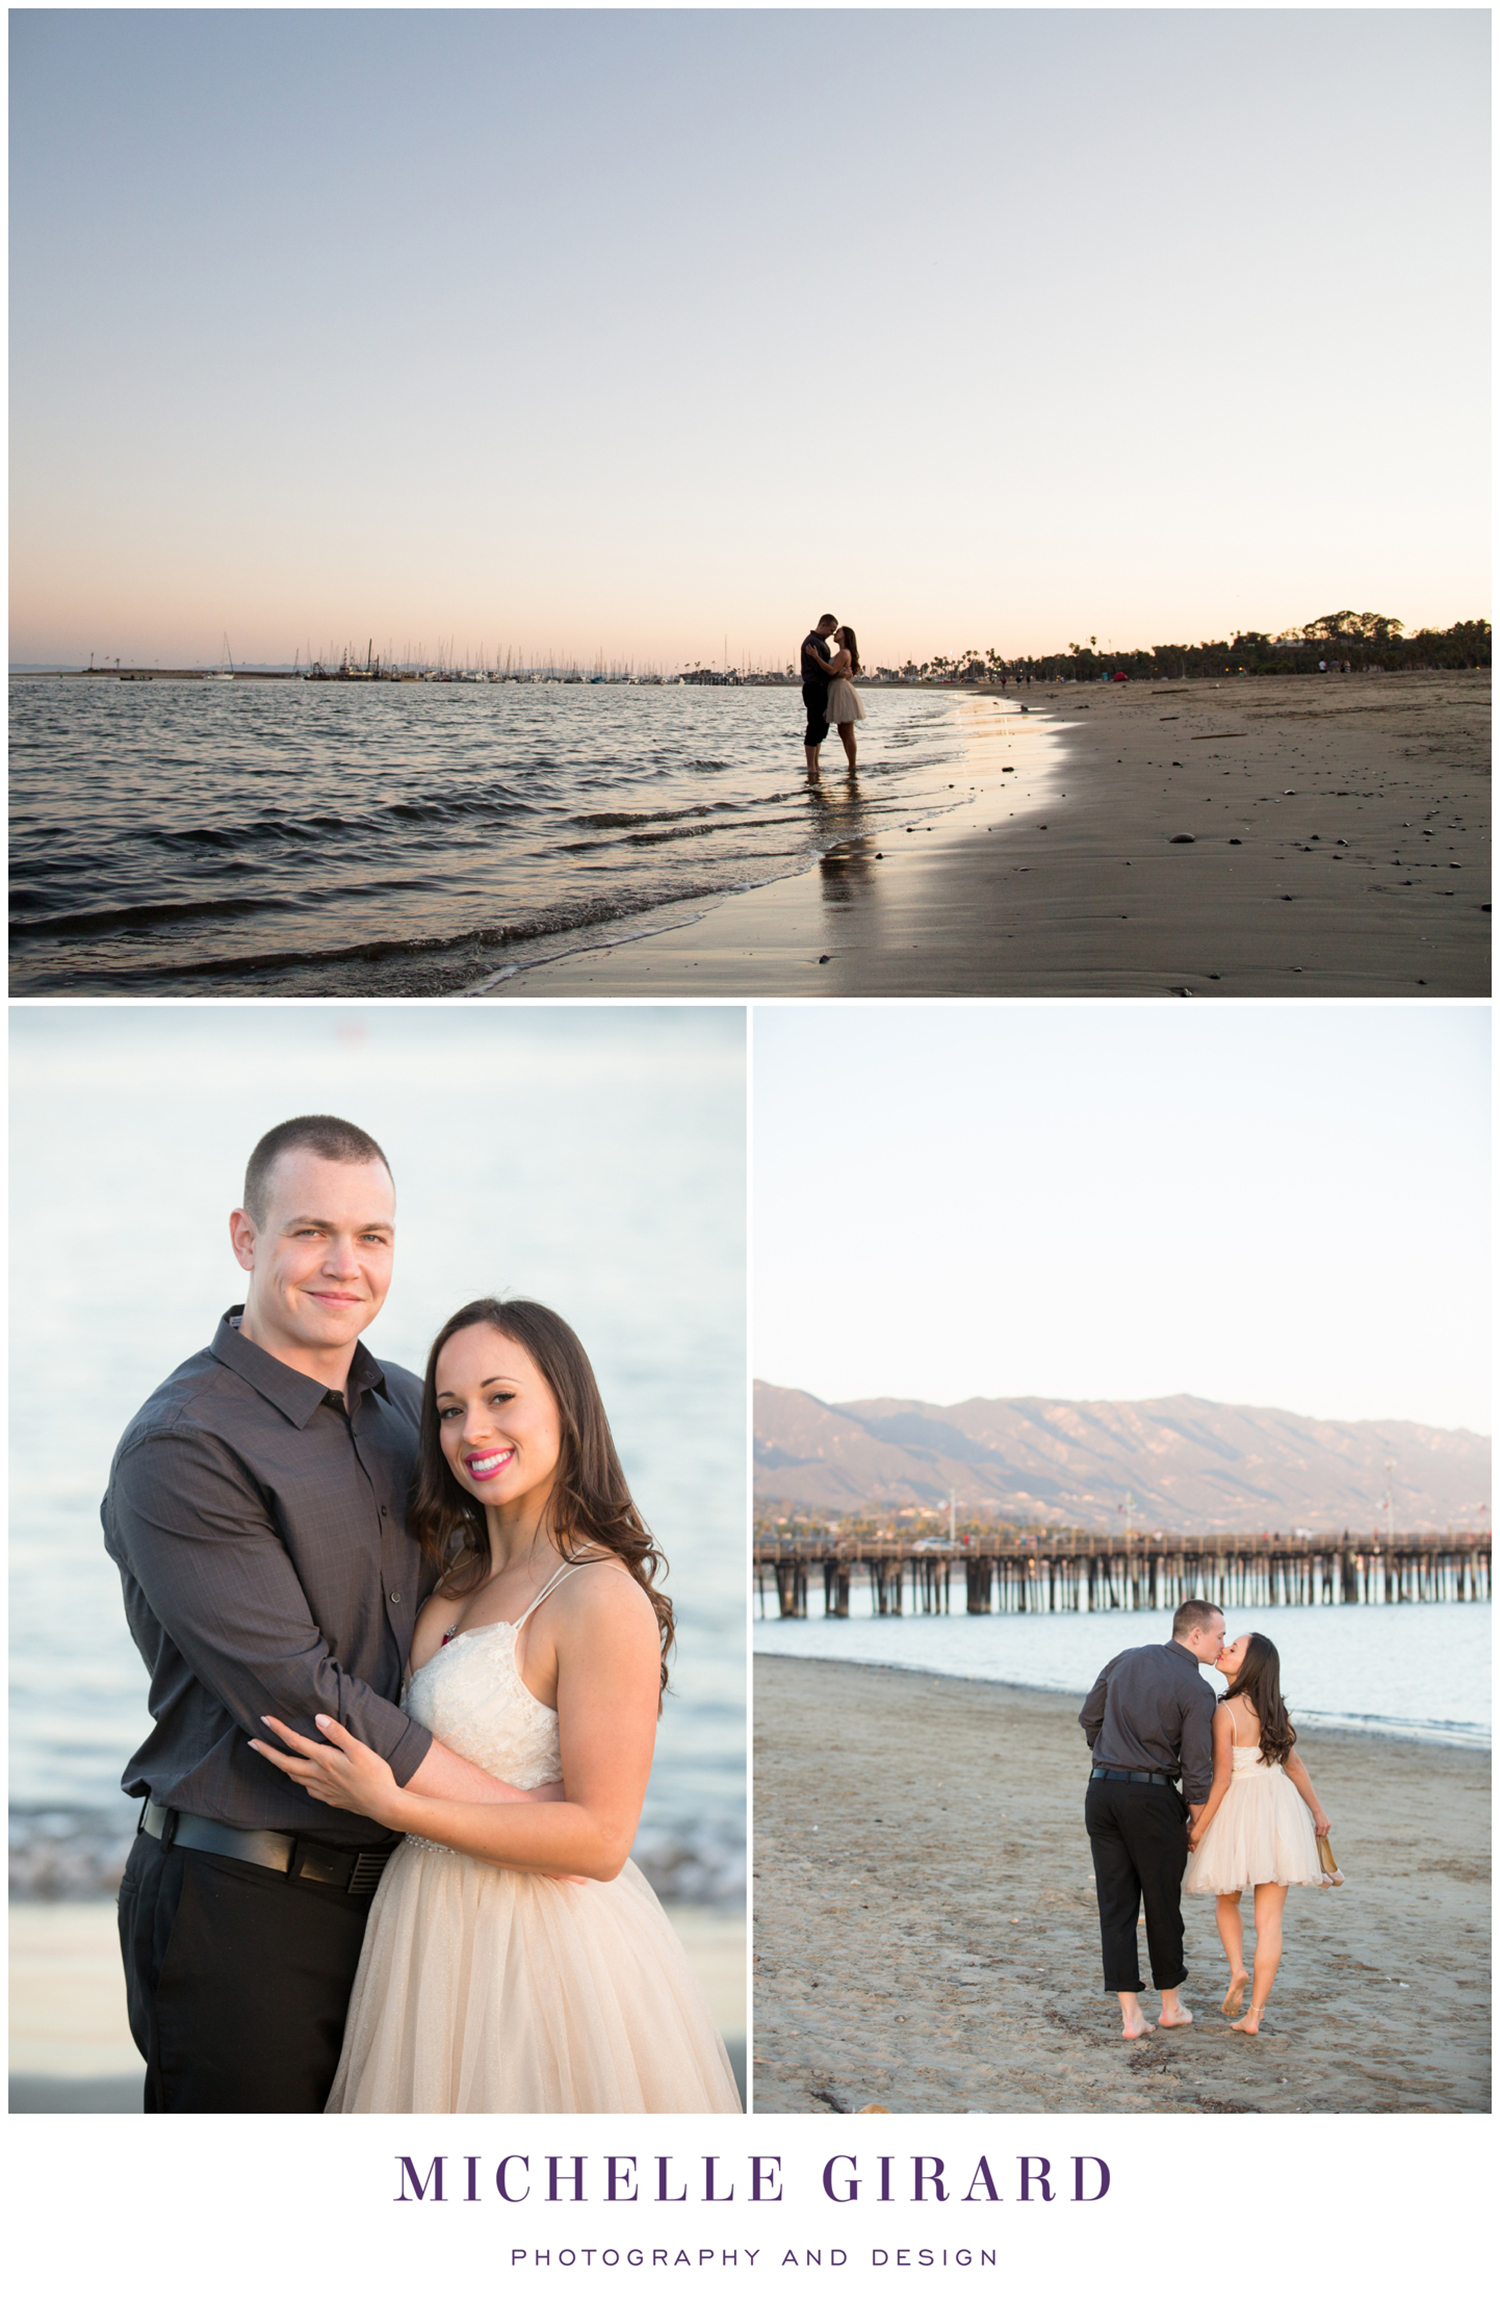 santa-barbara-sunset-beach-elopement-engagement-michelle-girard-photography-03.jpg